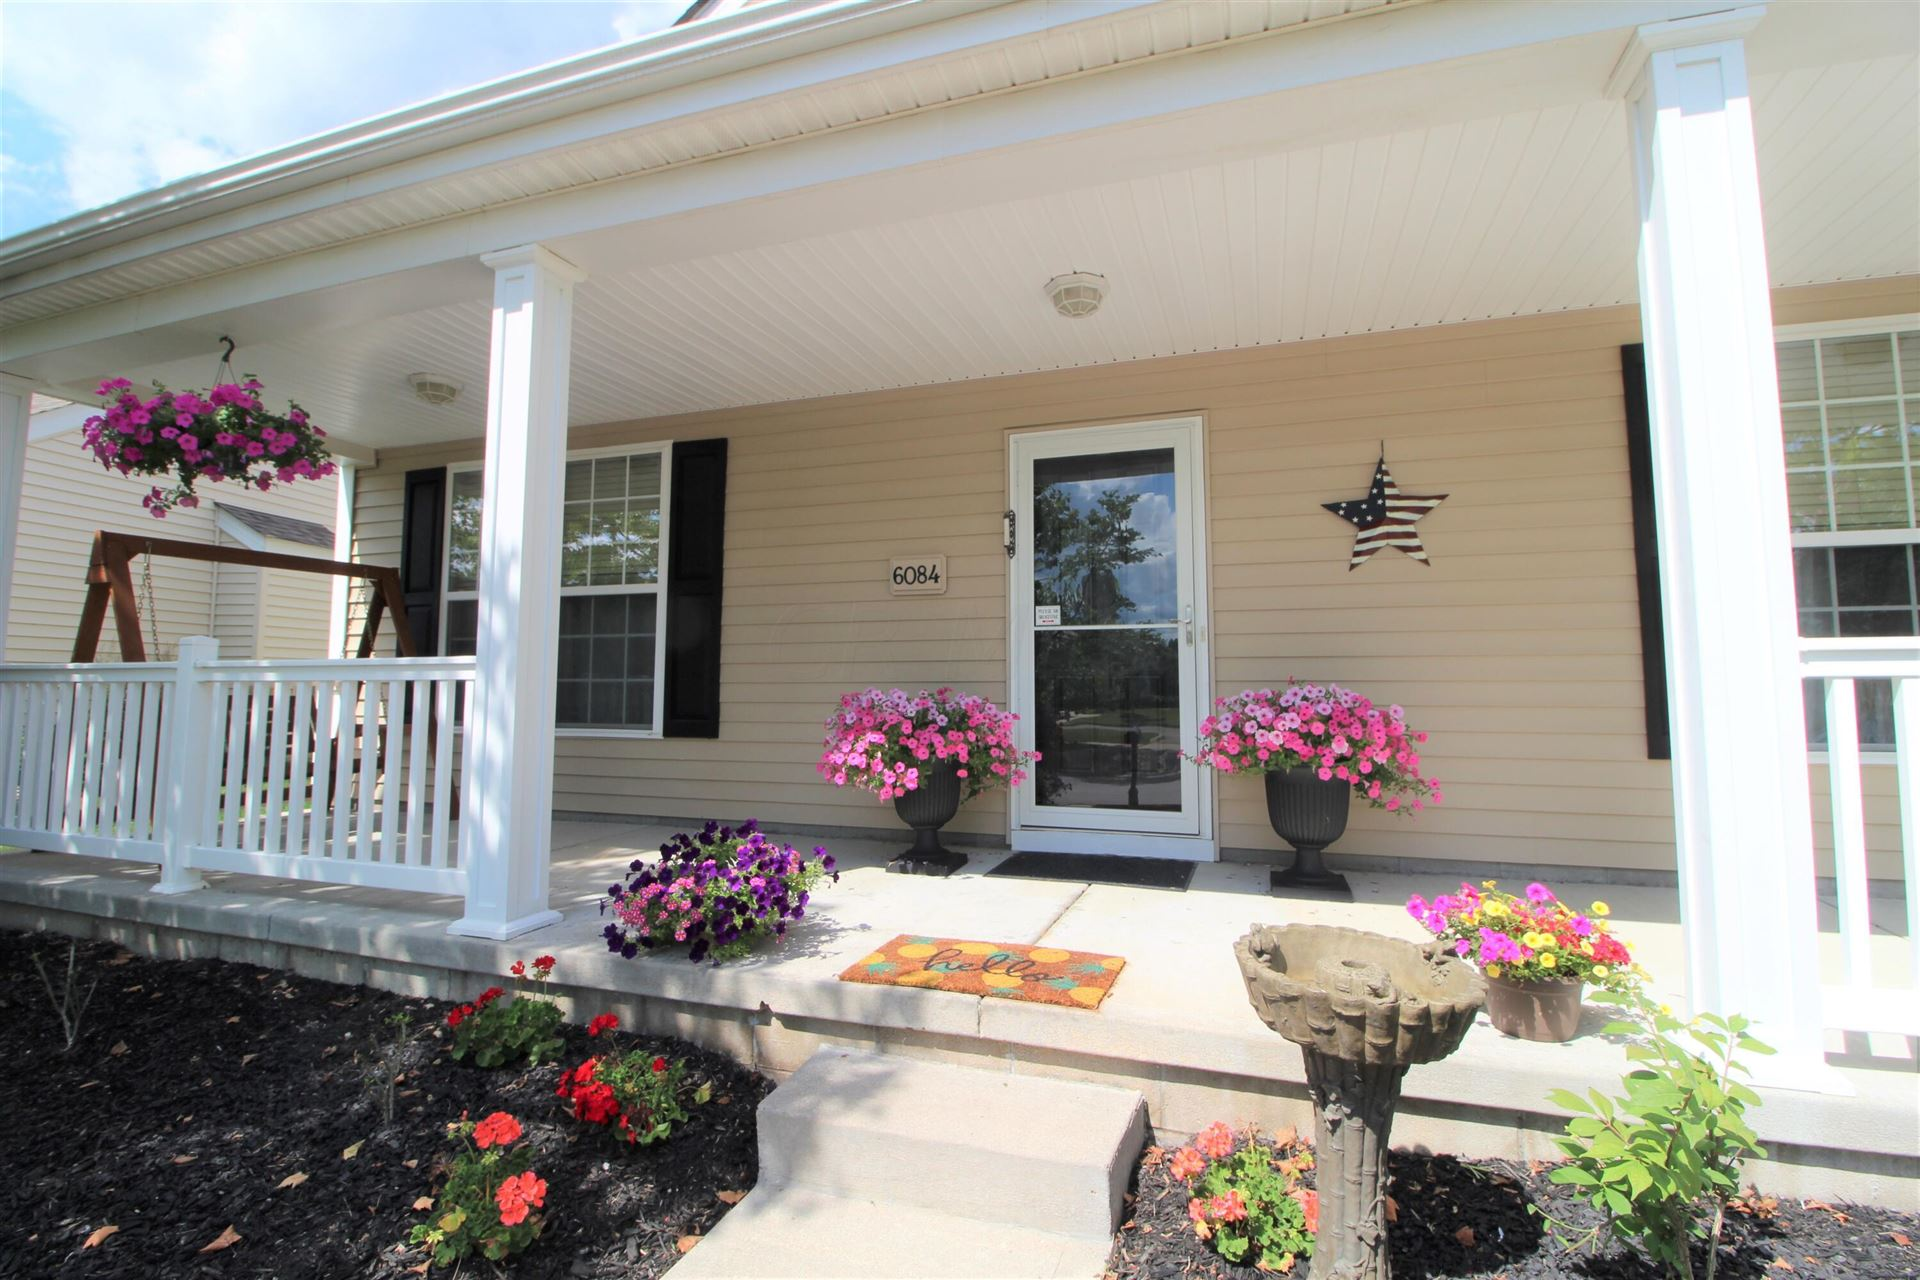 Photo of 6084 Delcastle Drive, Westerville, OH 43081 (MLS # 221021572)